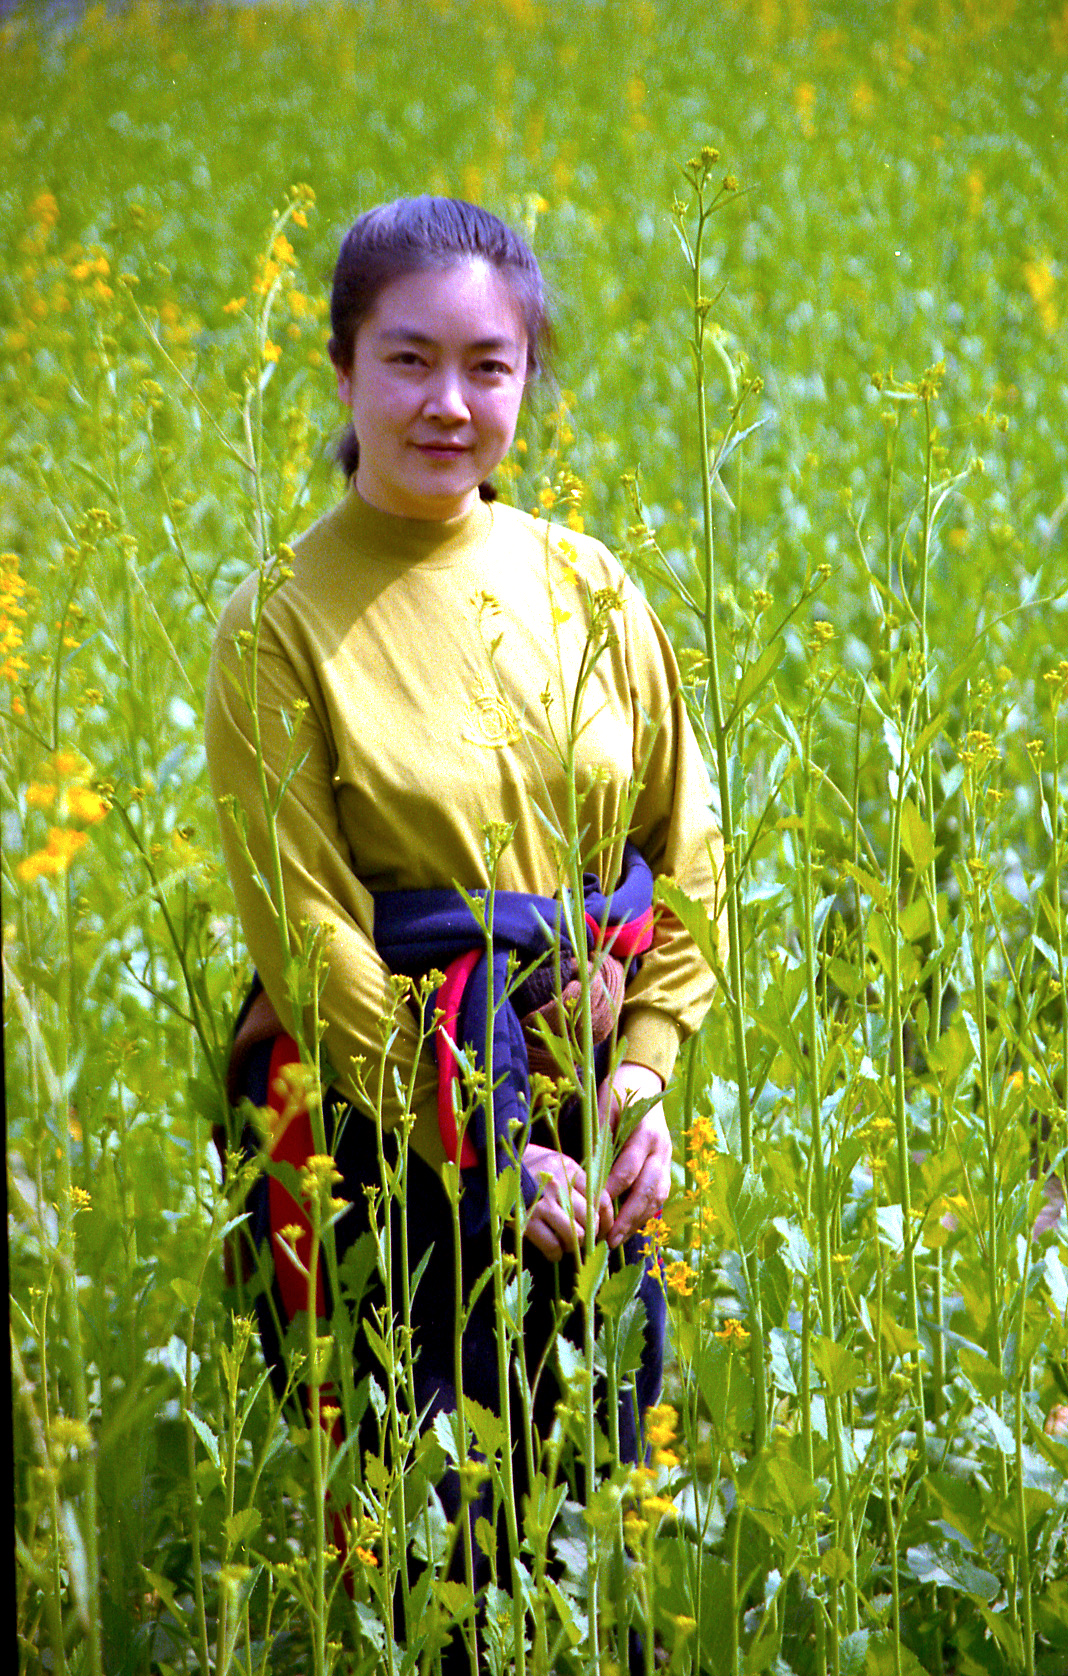 Jennifer at the suburb and Mianyang City, Sichuan Province, China in 1998. 曾錚1998年初攝於四川綿陽郊區。